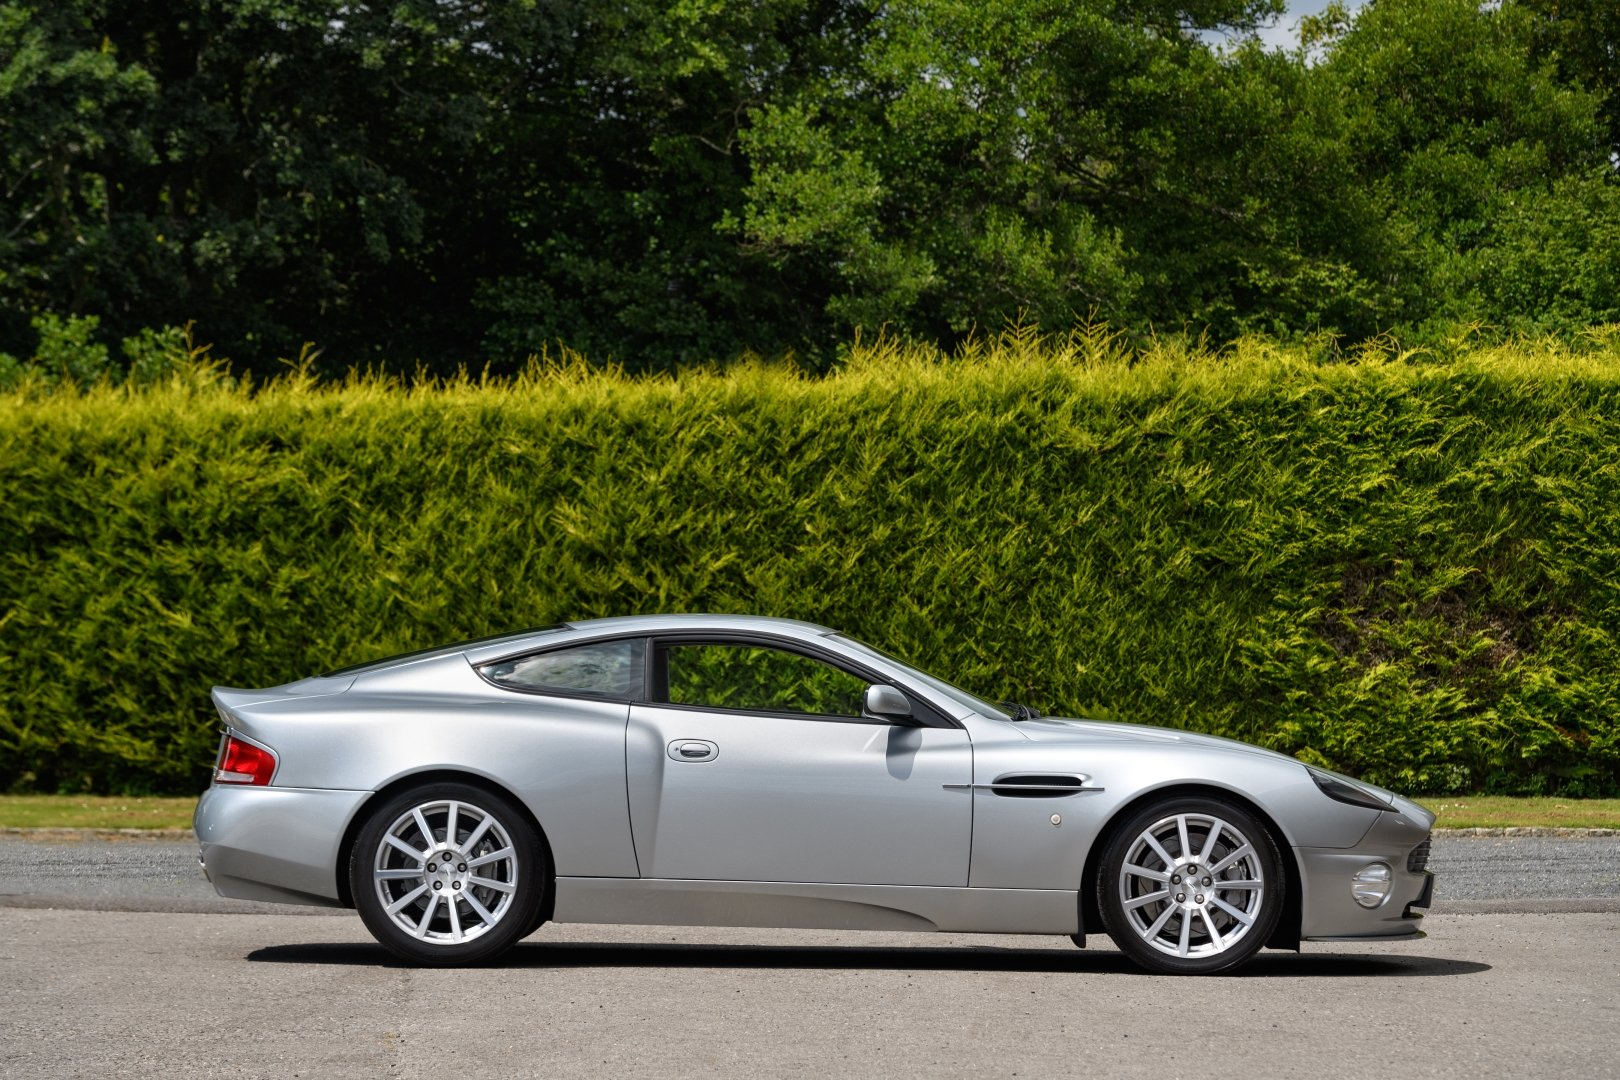 2005 Aston Martin Vanquish S - AM Works 6 Speed Manual  For Sale (picture 6 of 6)